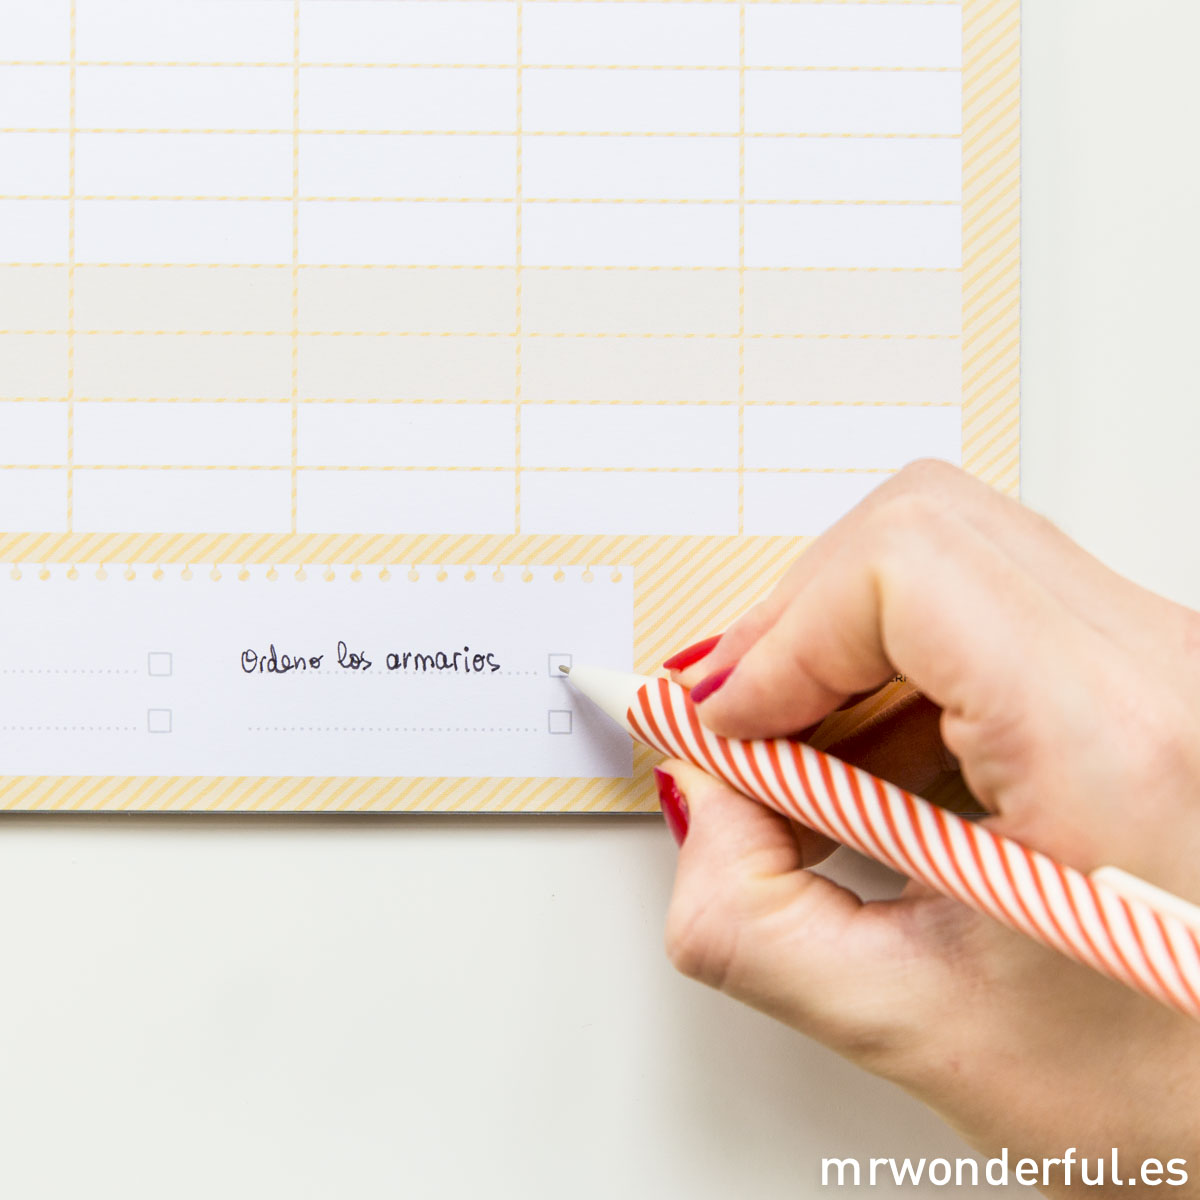 mrwonderful_CAL-WONDER-13_Calendario-2015_familiar_sobrevivir-al-lio-69